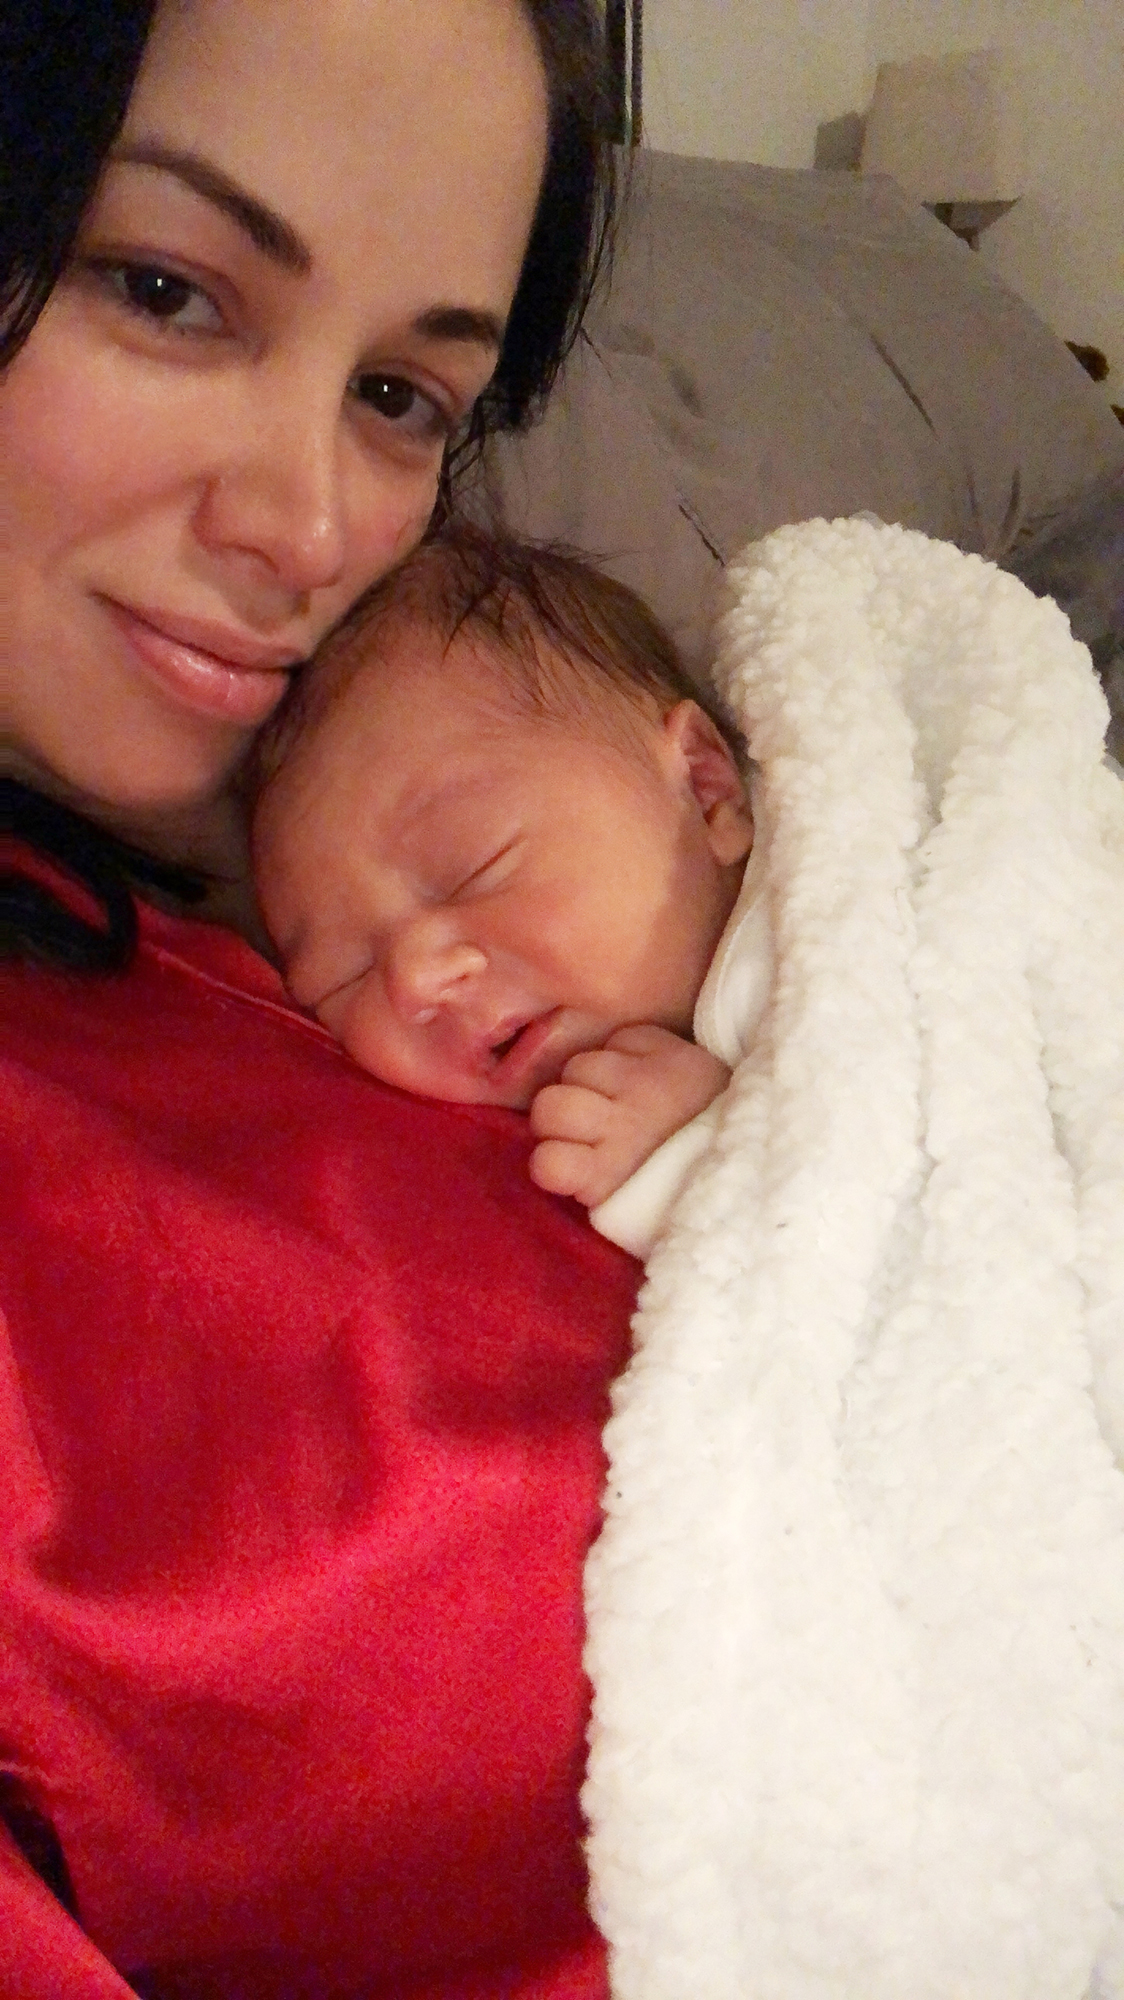 90 Day Fiance's Paola and Russ Mayfield Share Home Birth Photos